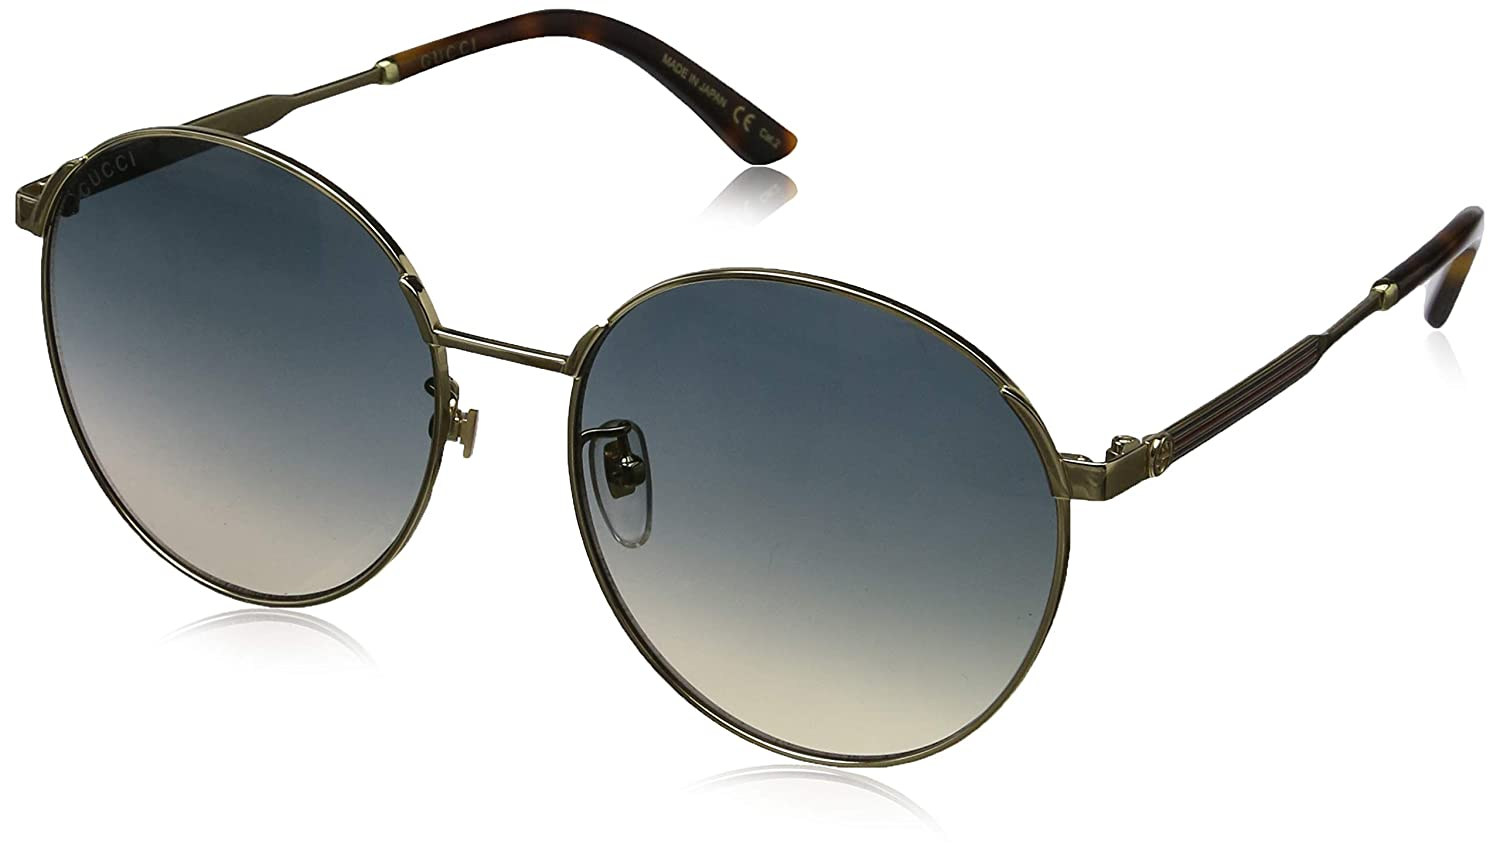 Gucci - Occhiale da Sole Unisex, Havana Gold/Blue Shaded  GG0206SK  005  C58